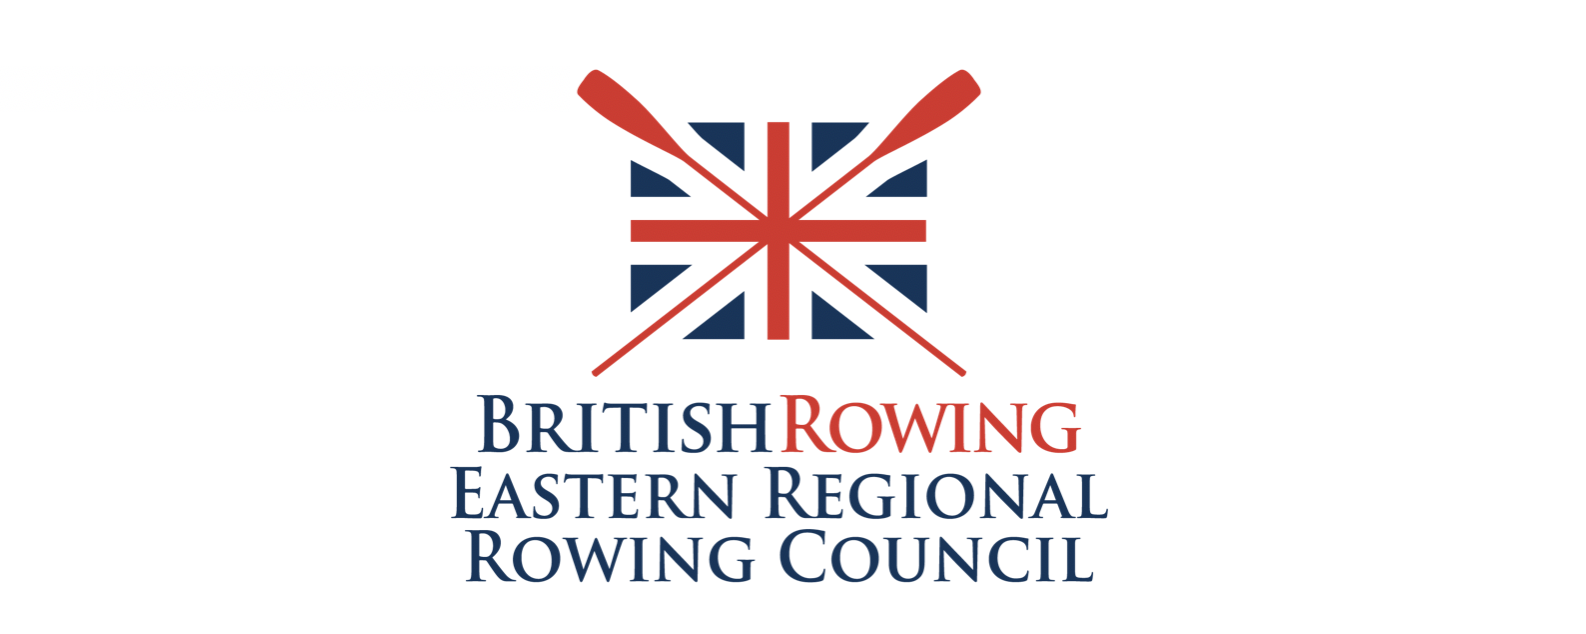 The purpose, activity and aspirations of YOUR Regional Rowing Council